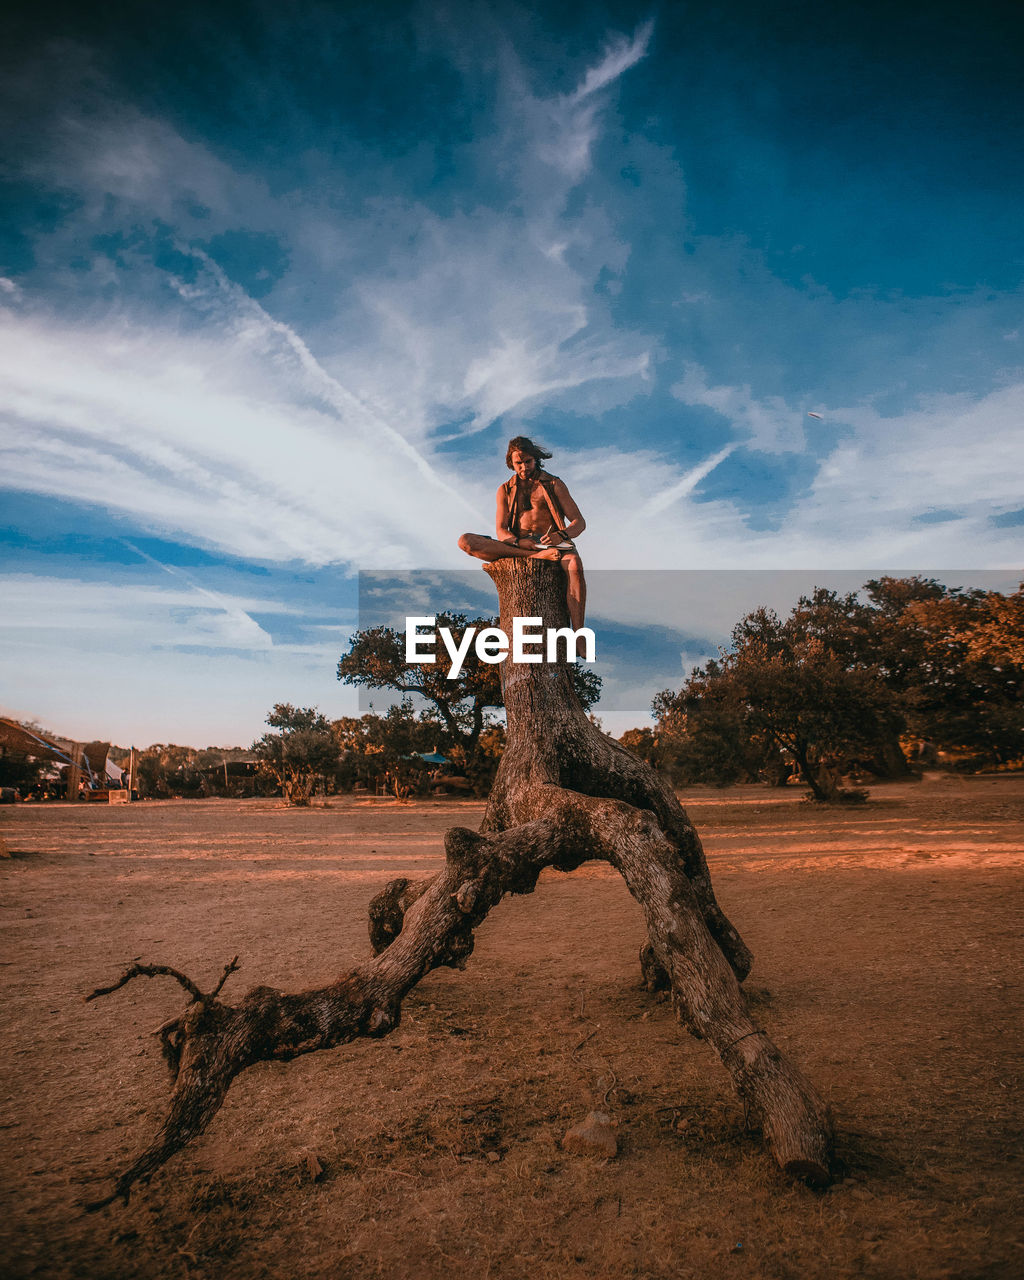 Man Sitting On Dead Tree Against Sky